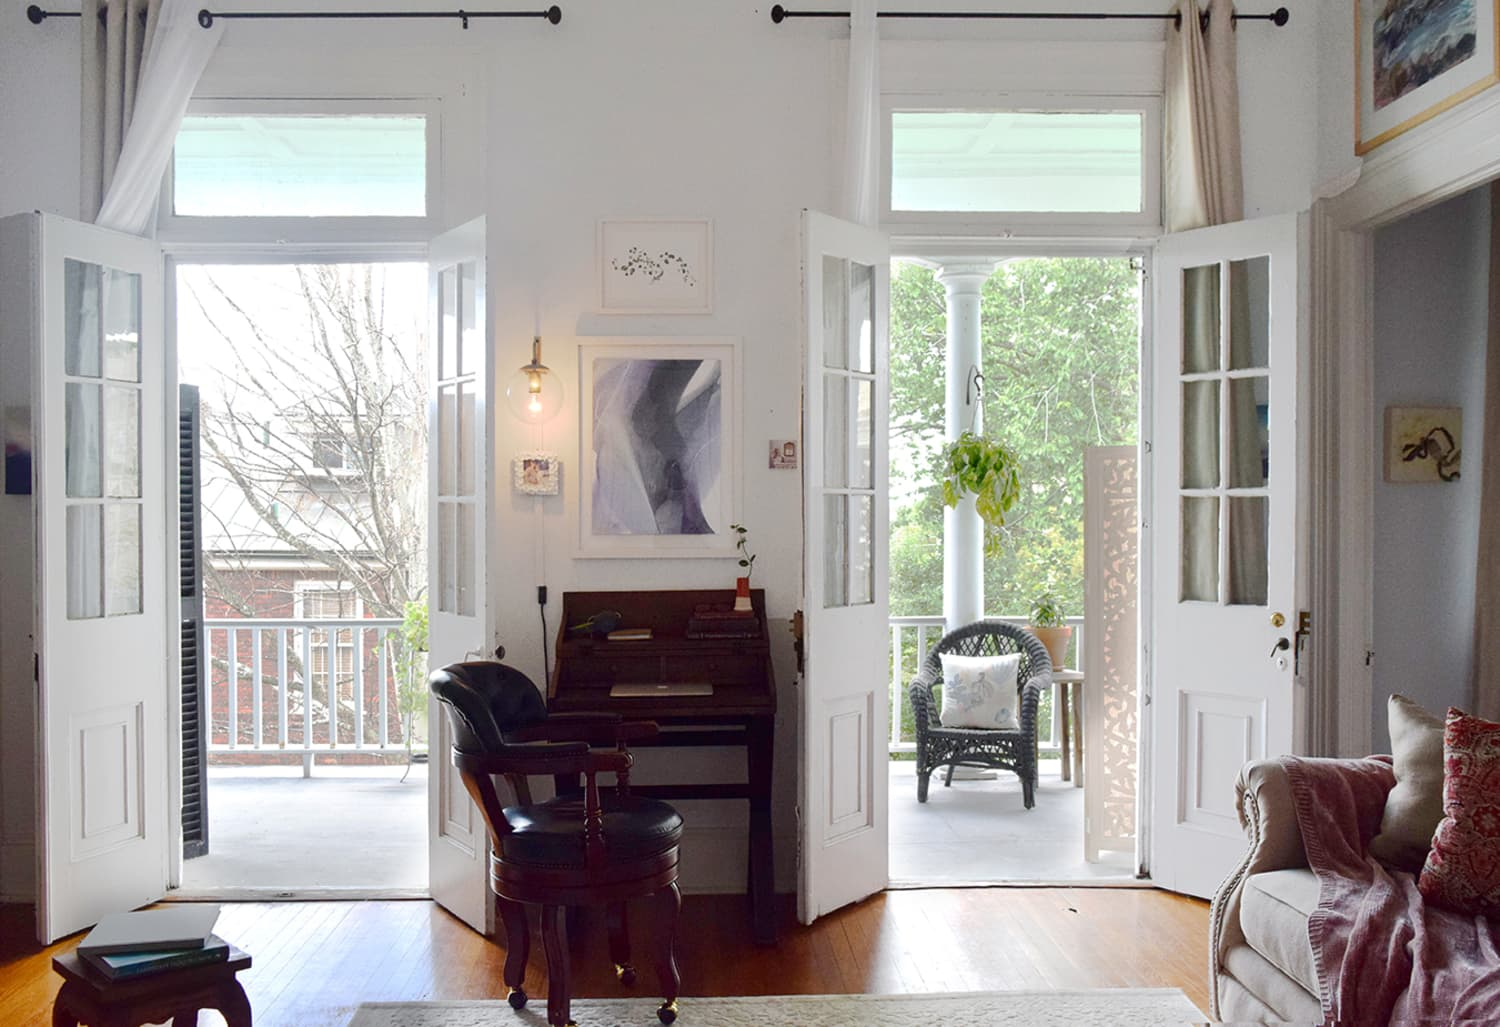 A Small Apartment in an Old House Has Smart, Money-Saving Solutions for Covering Tall Windows